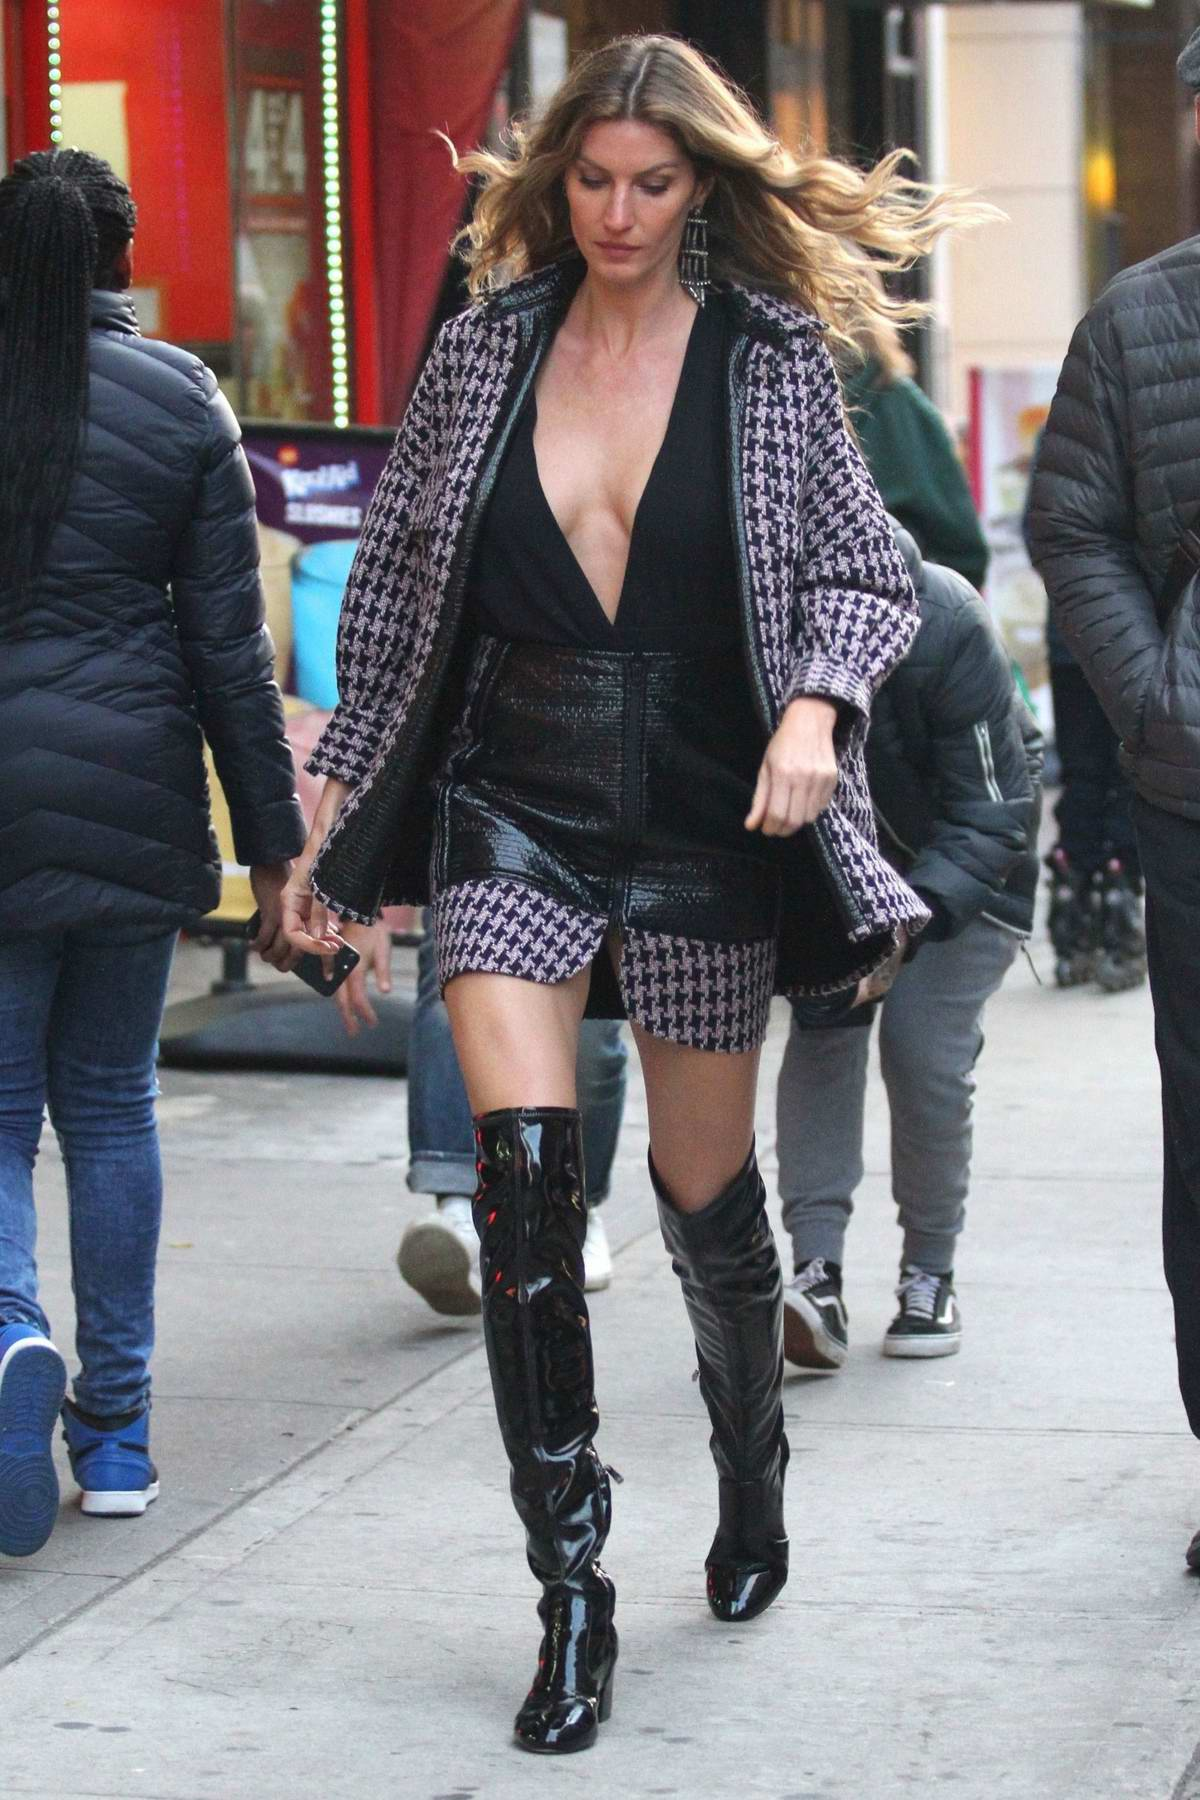 Gisele Bundchen spotted during a photoshoot on the streets of Brooklyn, New York City